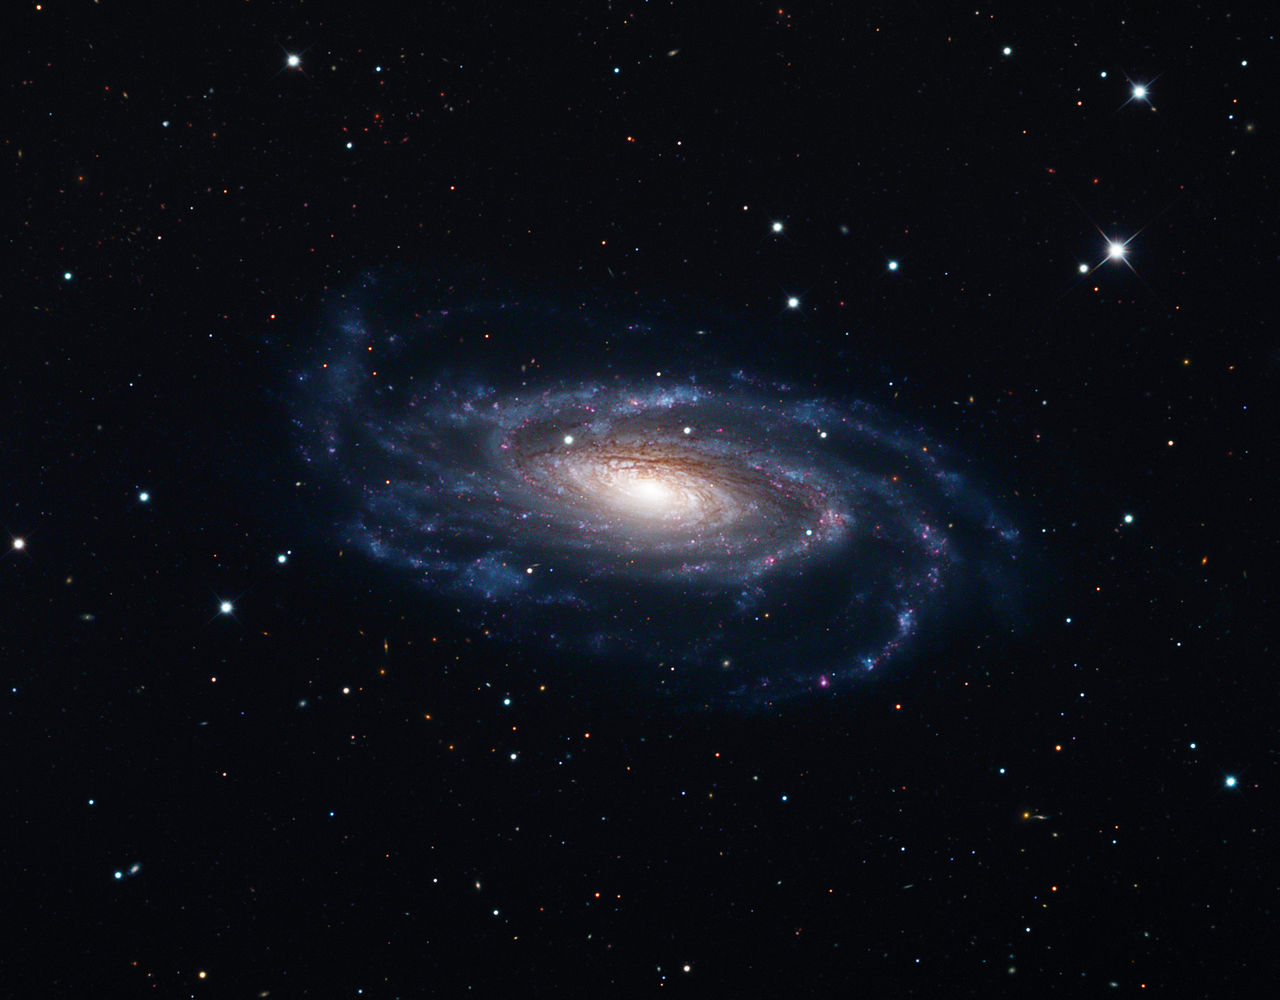 1280px-NGC_5033%2C_Schulman_Foundation_32_inch_telescope_on_Mt._Lemmon%2C_AZ.jpg